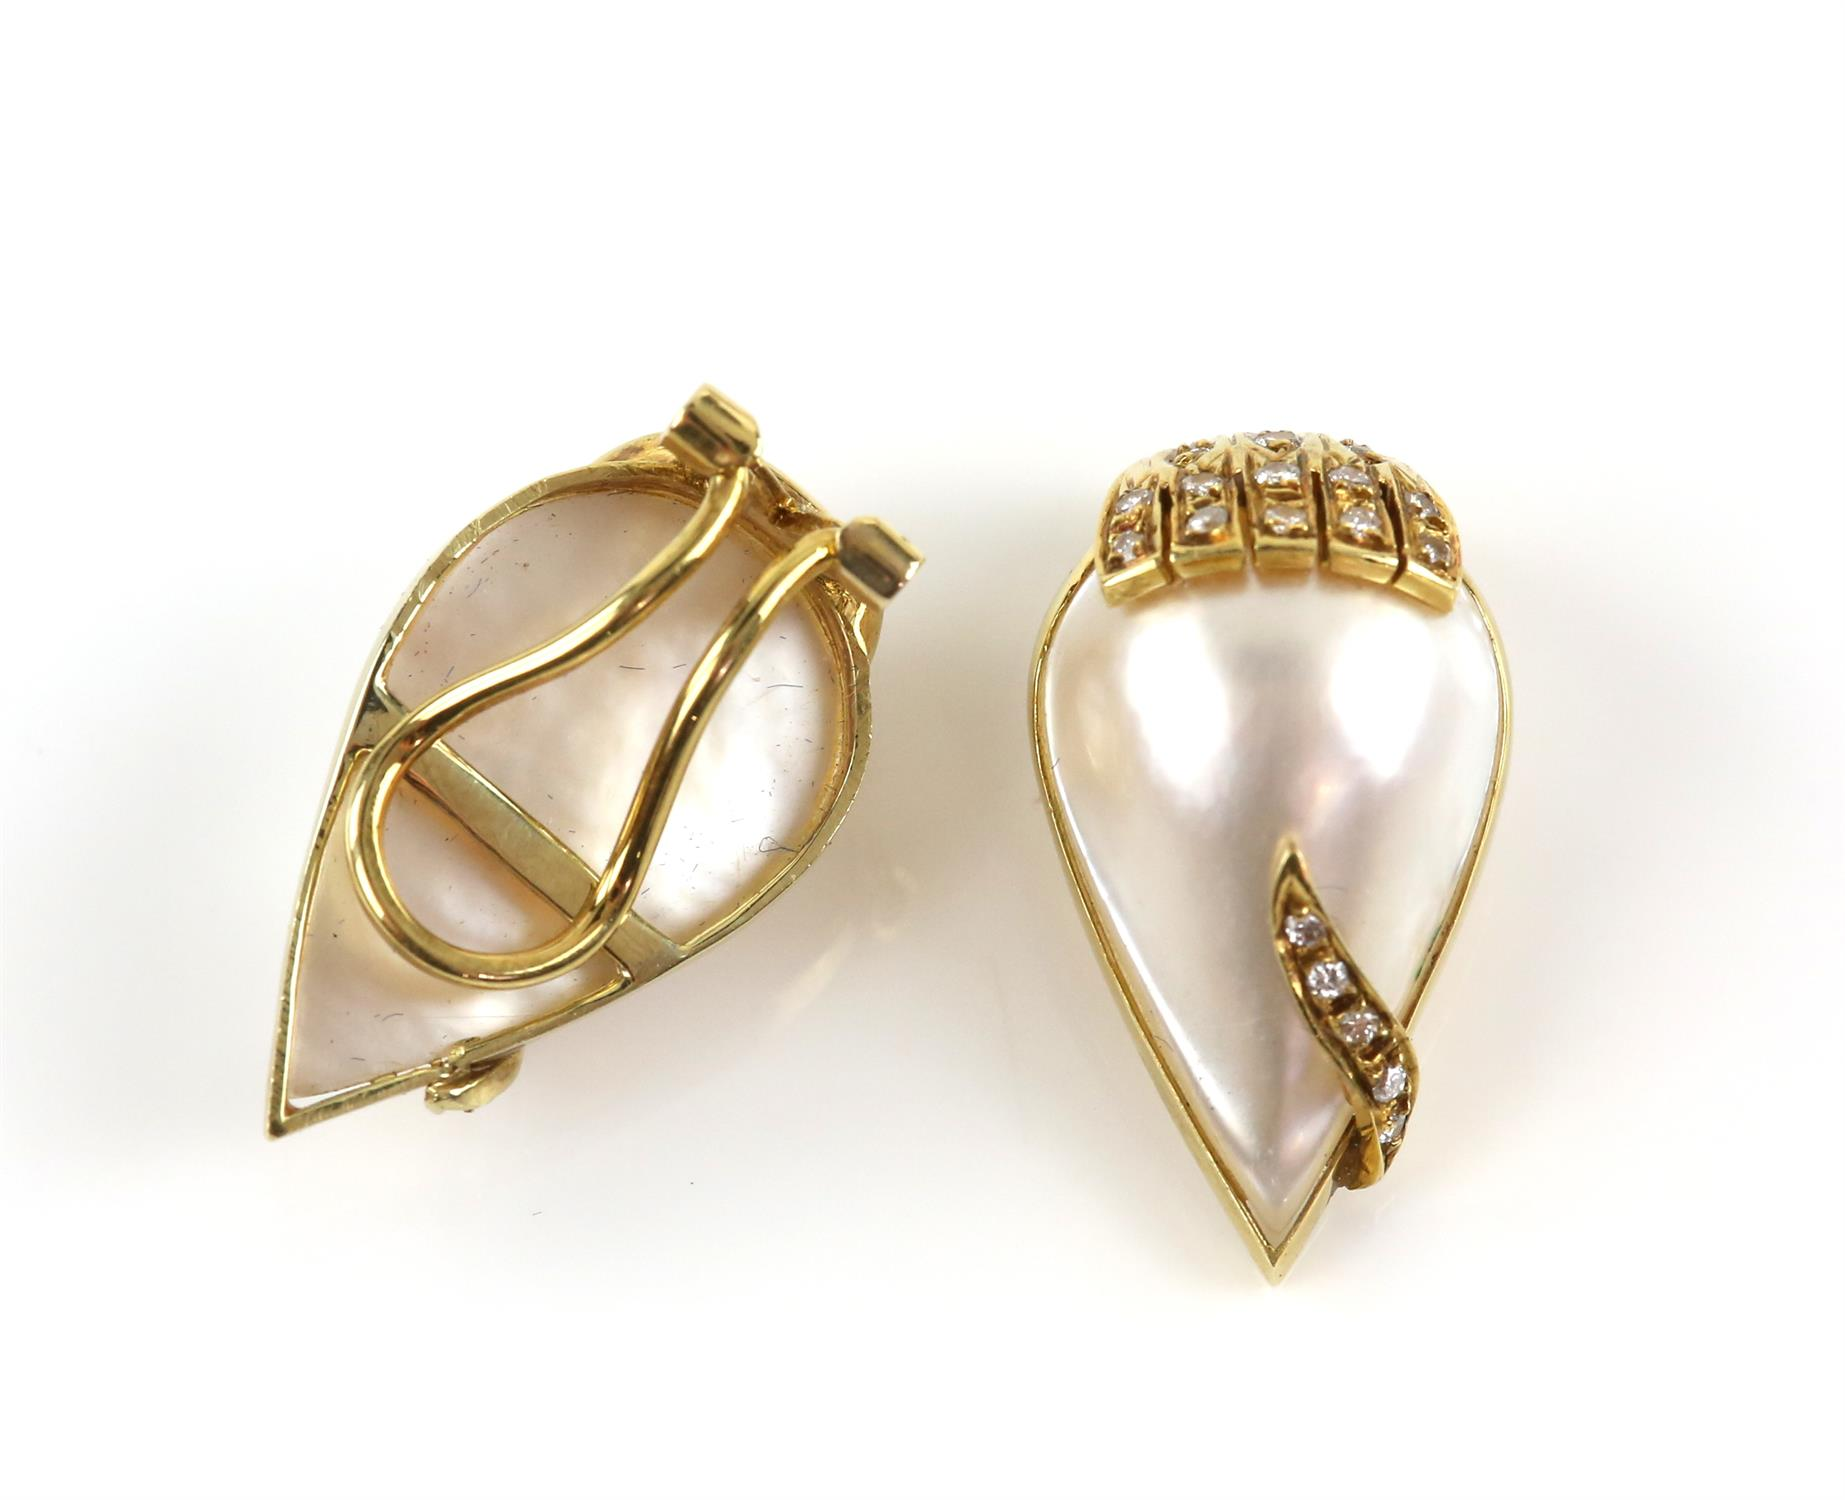 Vintage mabé pearl and diamond ear clips, pear shaped mabé pearls measuring approximately 22 x 13. - Image 2 of 2